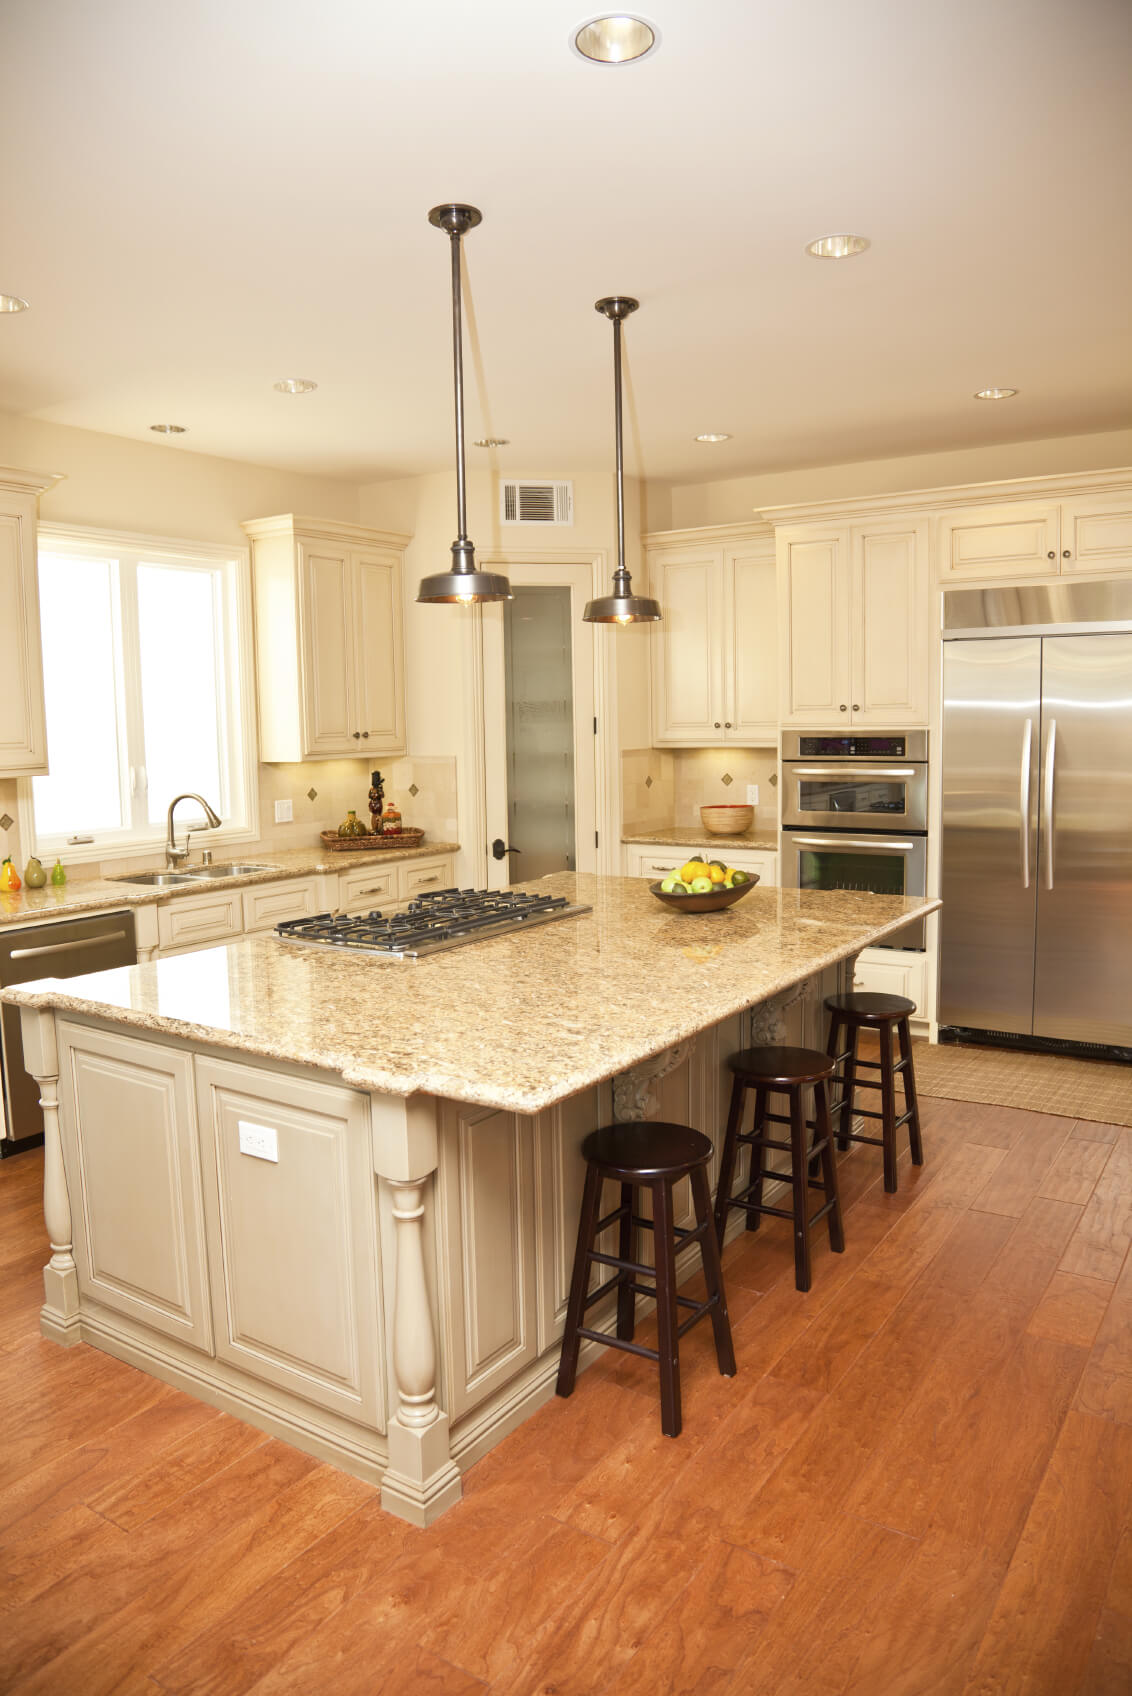 Kitchen island photo of a luxurious beige tone island features wide